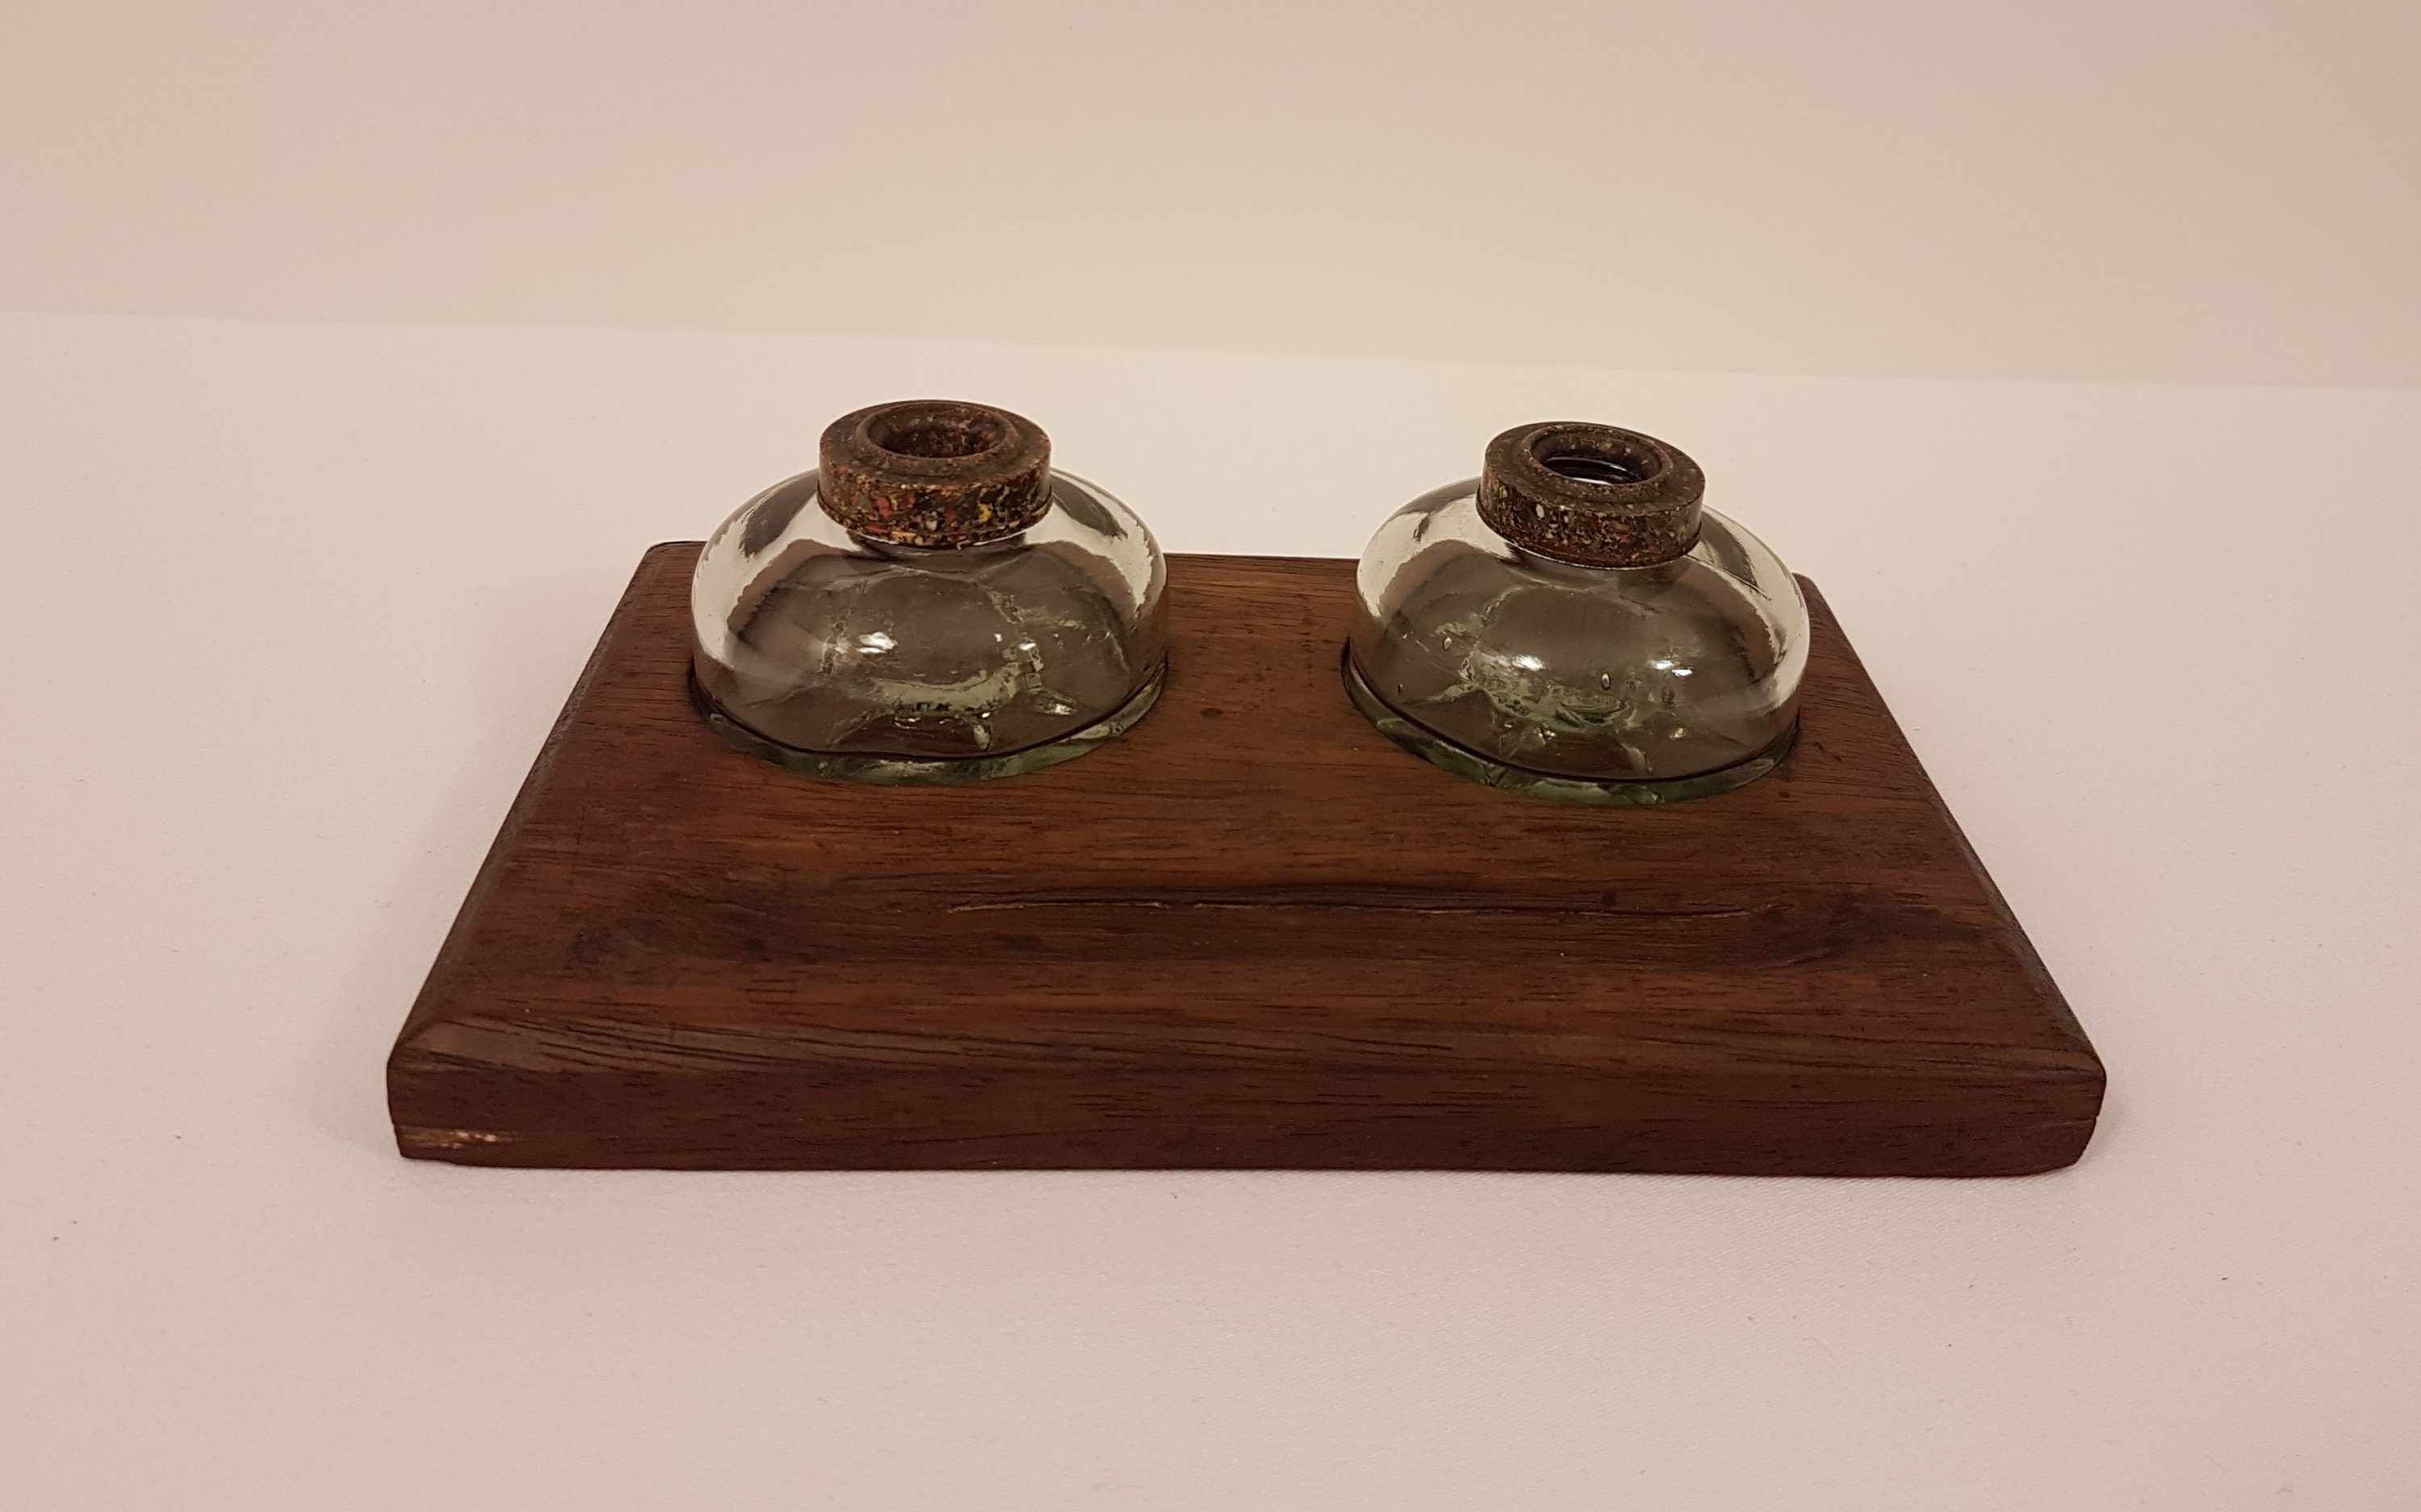 Two glass inkwells with wooden inkstand velos series inkwells with